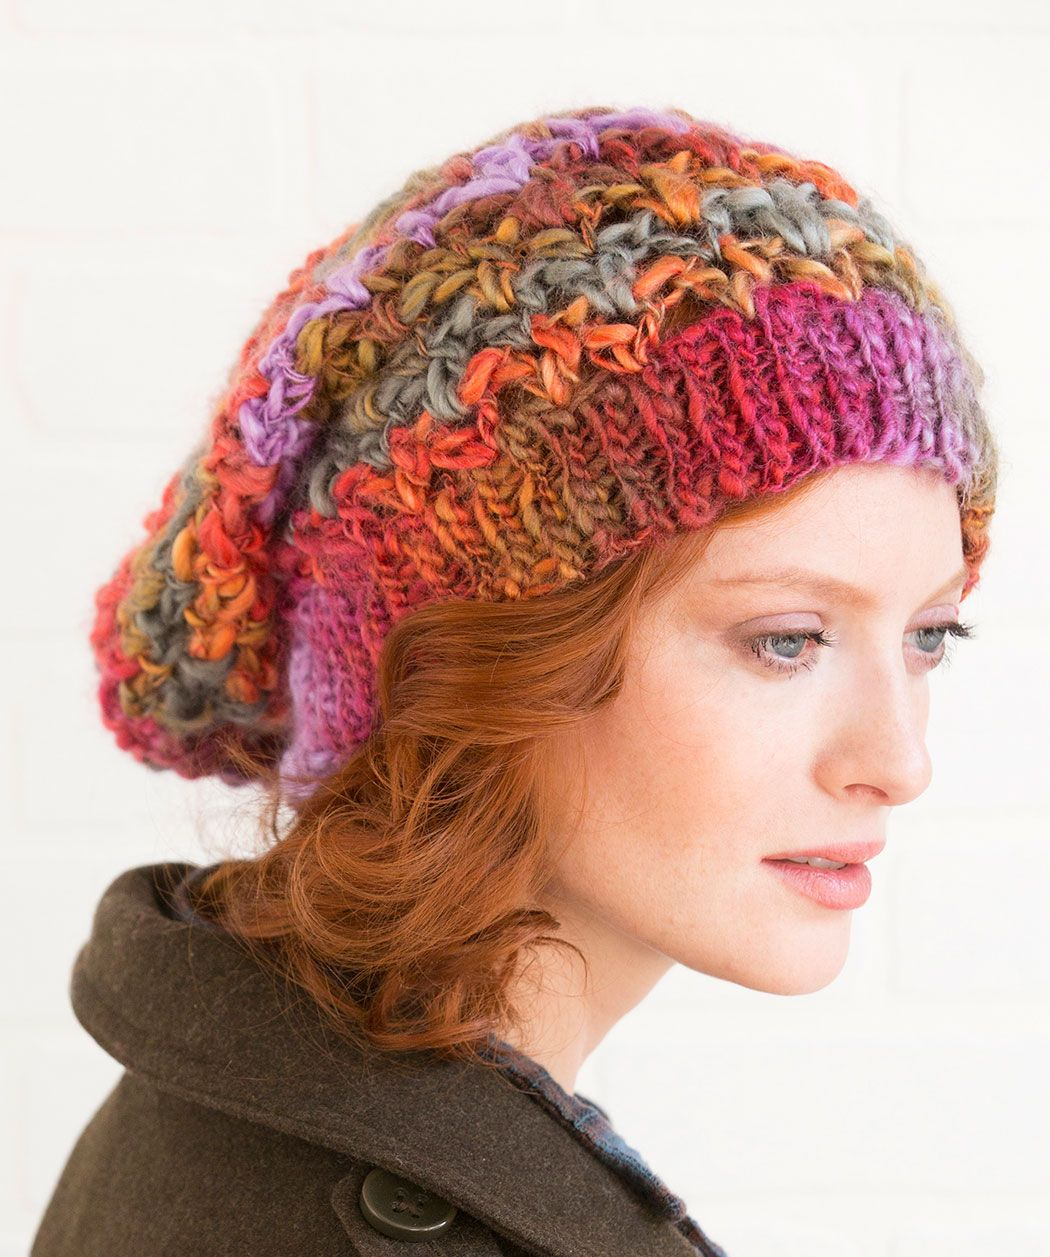 Upscale slouchy hat free crochet pattern in red heart yarns the upscale slouchy hat free crochet pattern in red heart yarns the beautiful shadings combine bankloansurffo Image collections